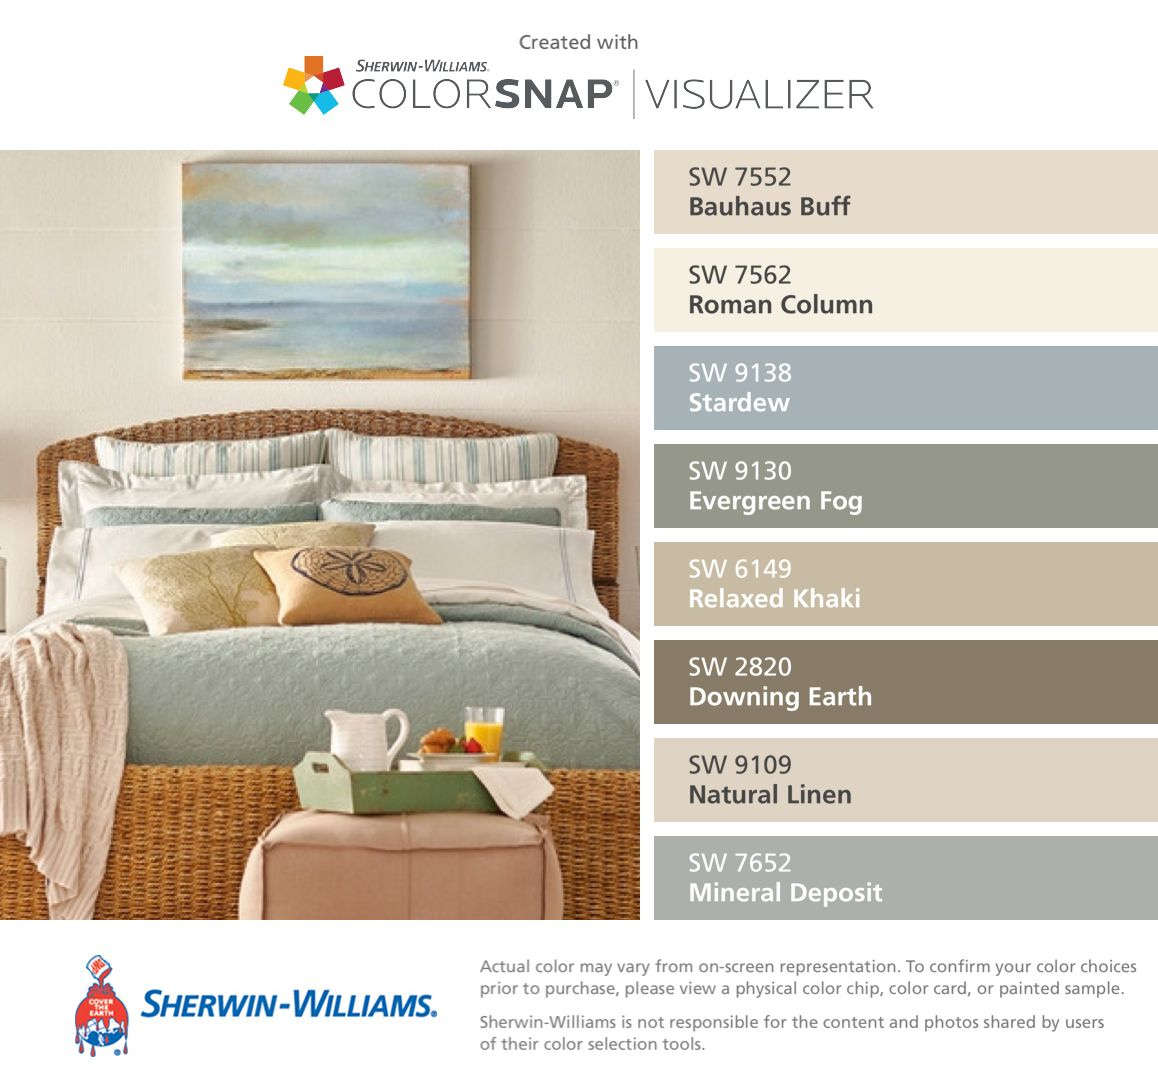 I Found These Colors With Colorsnap Visualizer For Iphone By Sherwin Williams Bauhaus Buff Sw 7552 Roman Column 7562 Stardew 9138